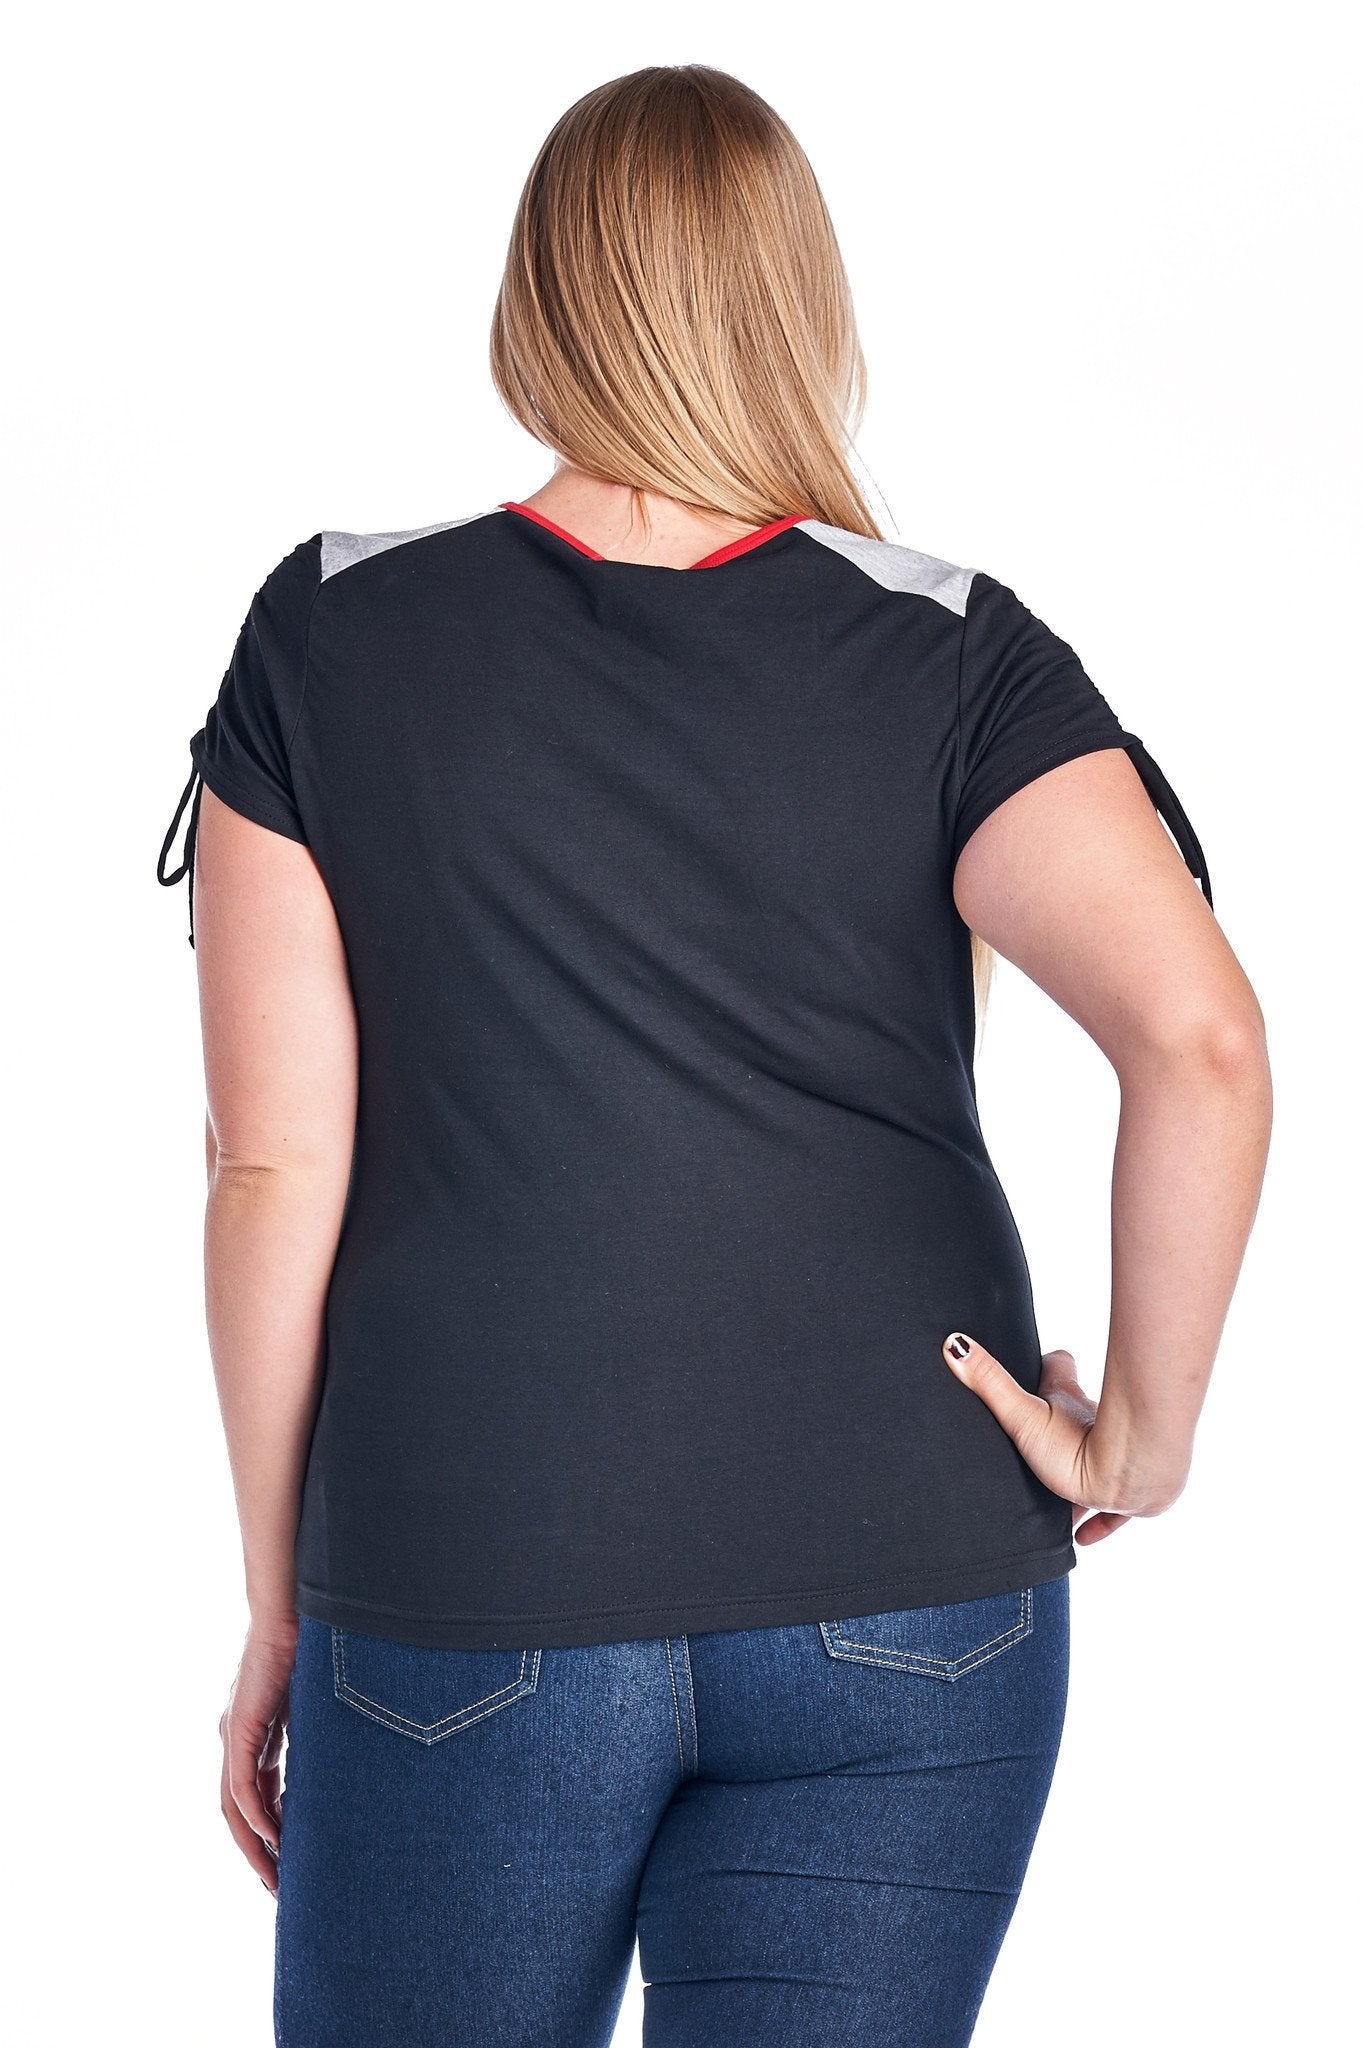 Women's Plus Size V-Neck Top with Sleeve Ties